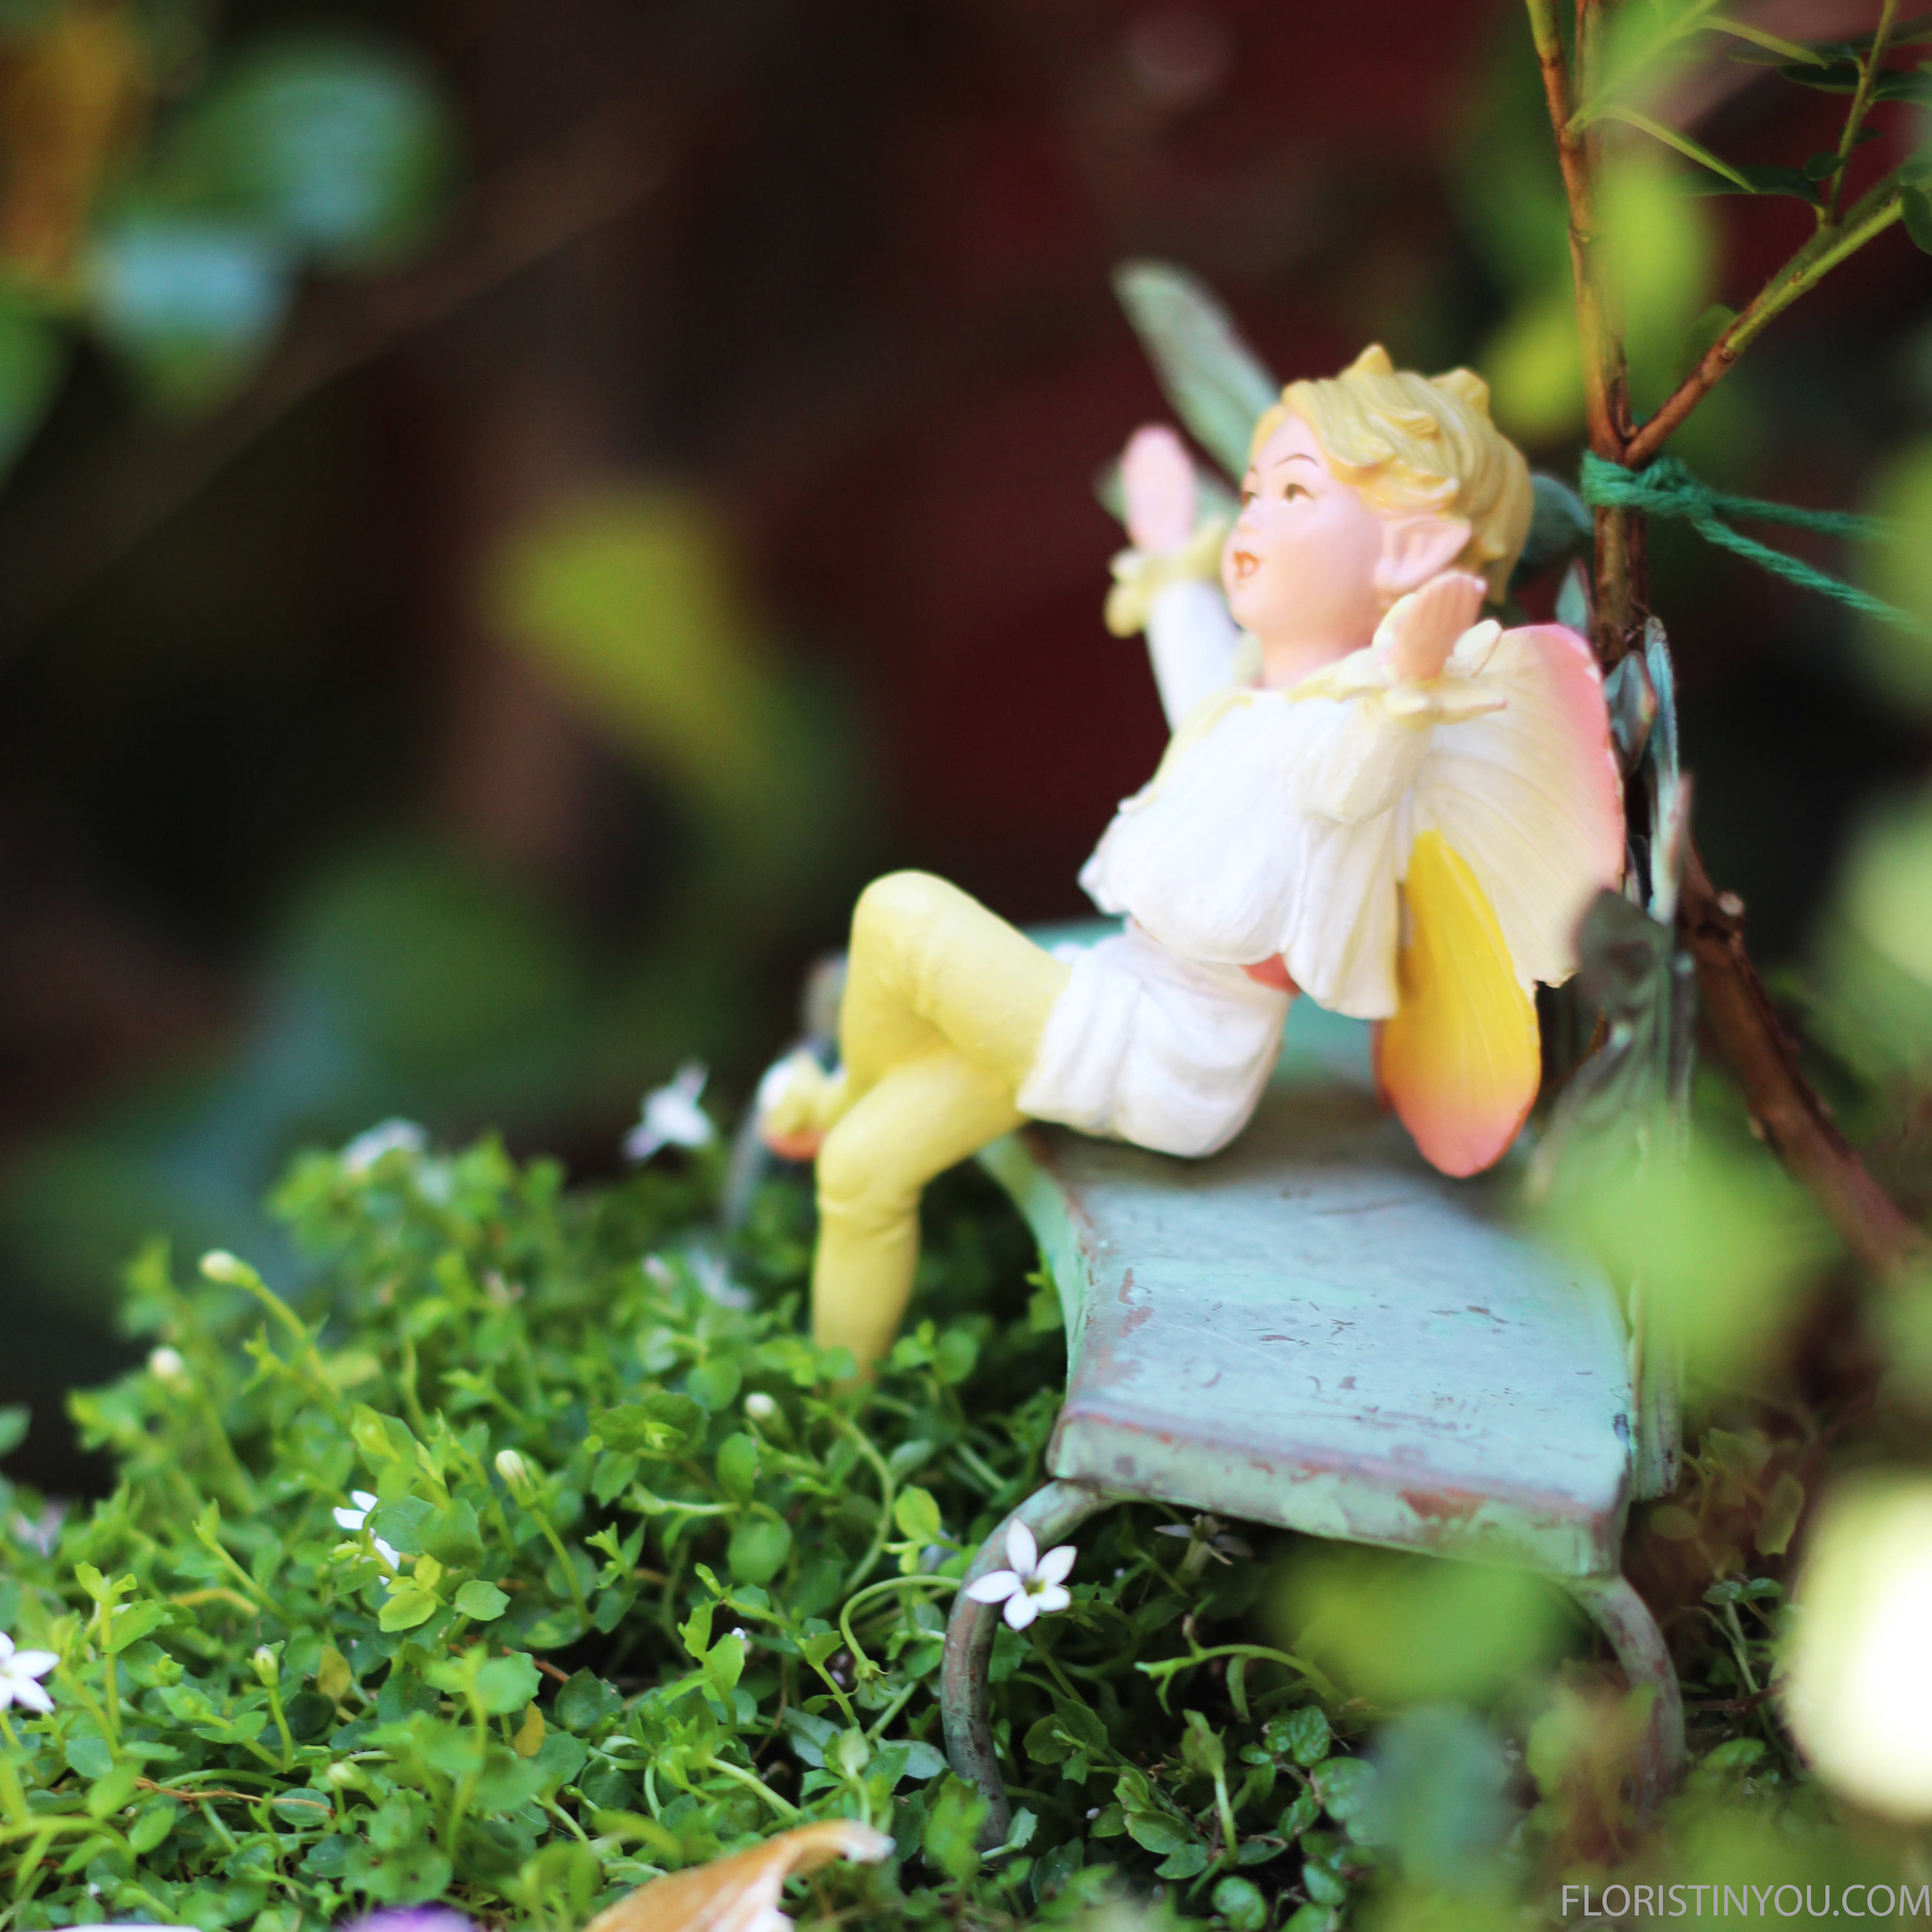 The Pear Blossom Fairie is right at home among the flowers.